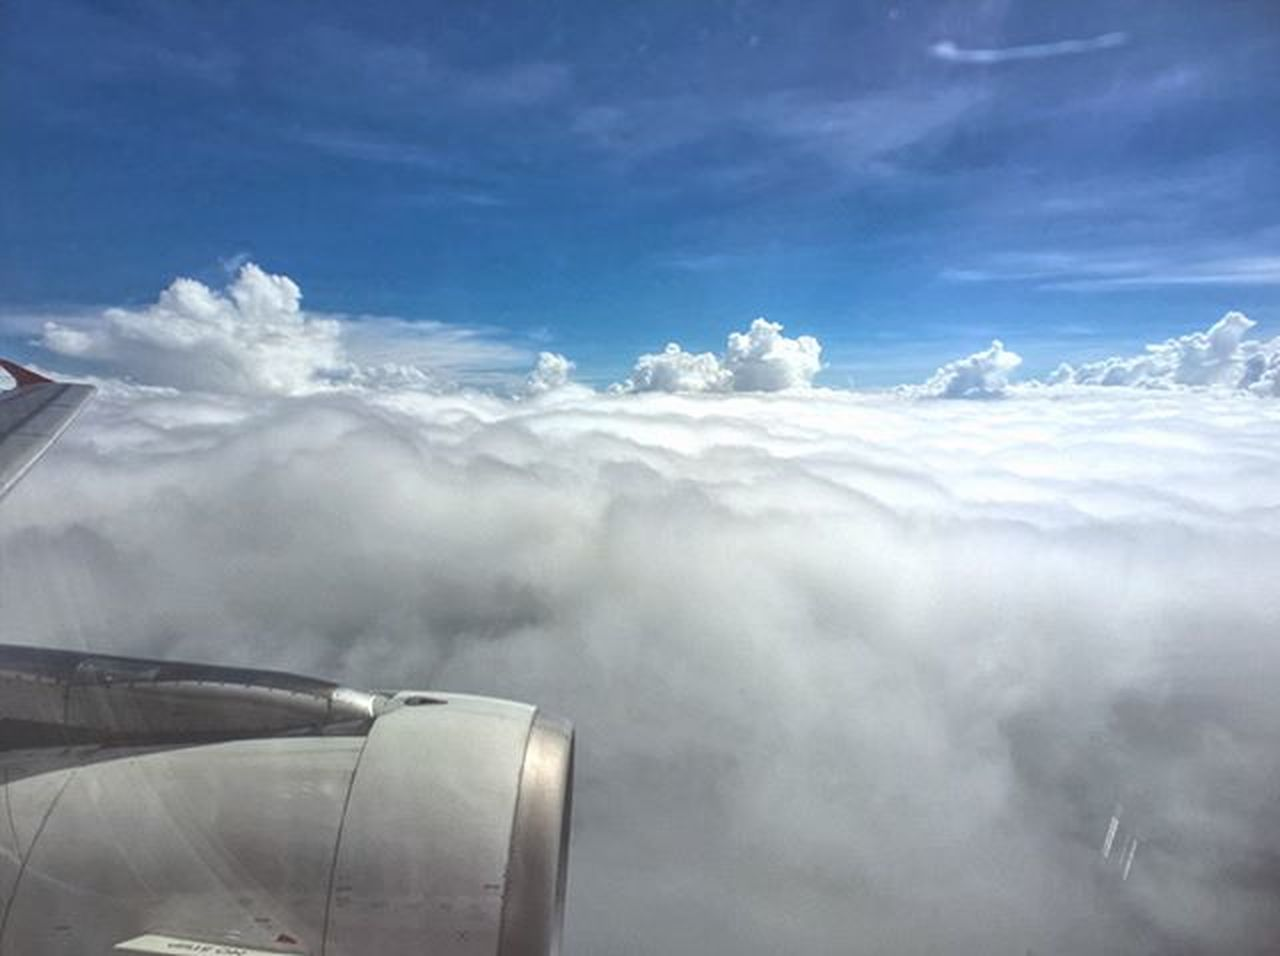 Flying. Above the clouds, blue skies. Lumia930 Mobilephotography WindowsPhonePhotography WeLoveLumia ShotOnMyLumia  Lumiaography Theappwhisperer Makemoments MoreLumiaLove GoodRadShot TheLumians Fhotoroom Lumia PicHitMe EyeEm EyeEm_O MenchFeature Photography Nban NbanFamily Pixelpanda Visitorg Aop_Lab Natgeo Natgeotravel NatGeoYourShot AdventureVisuals Cambodia PhnomPenh My_Mobile_Photography @fhotoroom_ @thelumians @lumiavoices @pichitme @windowsphonephotography @microsoftwindowsphone @microsoftlumiaphotography @mobile_photography @moment_lens @goodradshot @mobilephotoblog @street_hunters @lumia @pixel_panda_ @eyeem_o @photocrowd @photoadvices @nothingbutanokia @worldphotoorg